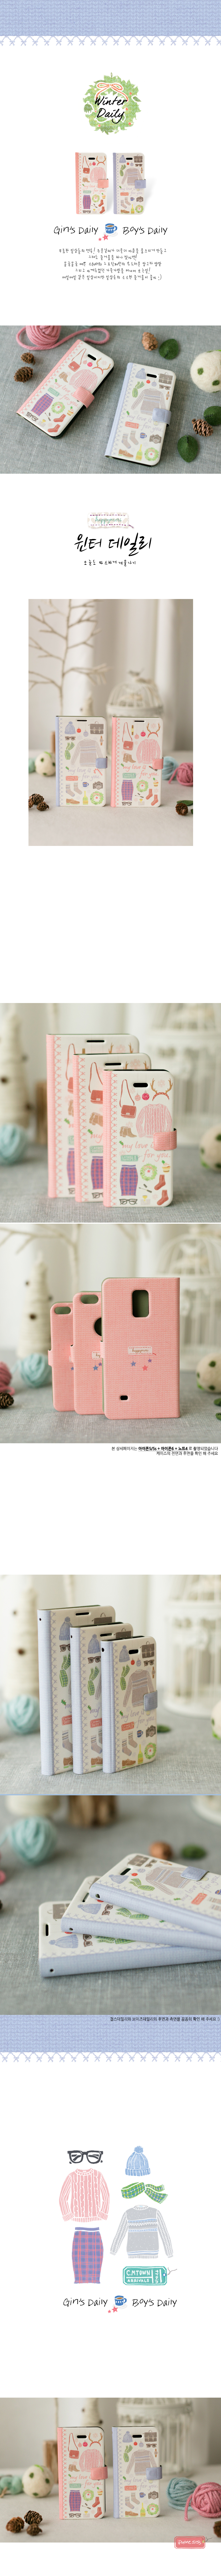 [HAPPYMORI] Flip Cover Case _ Winter Daily(iPhone4_4s,iPhone5_5s,iPhone6_6s)